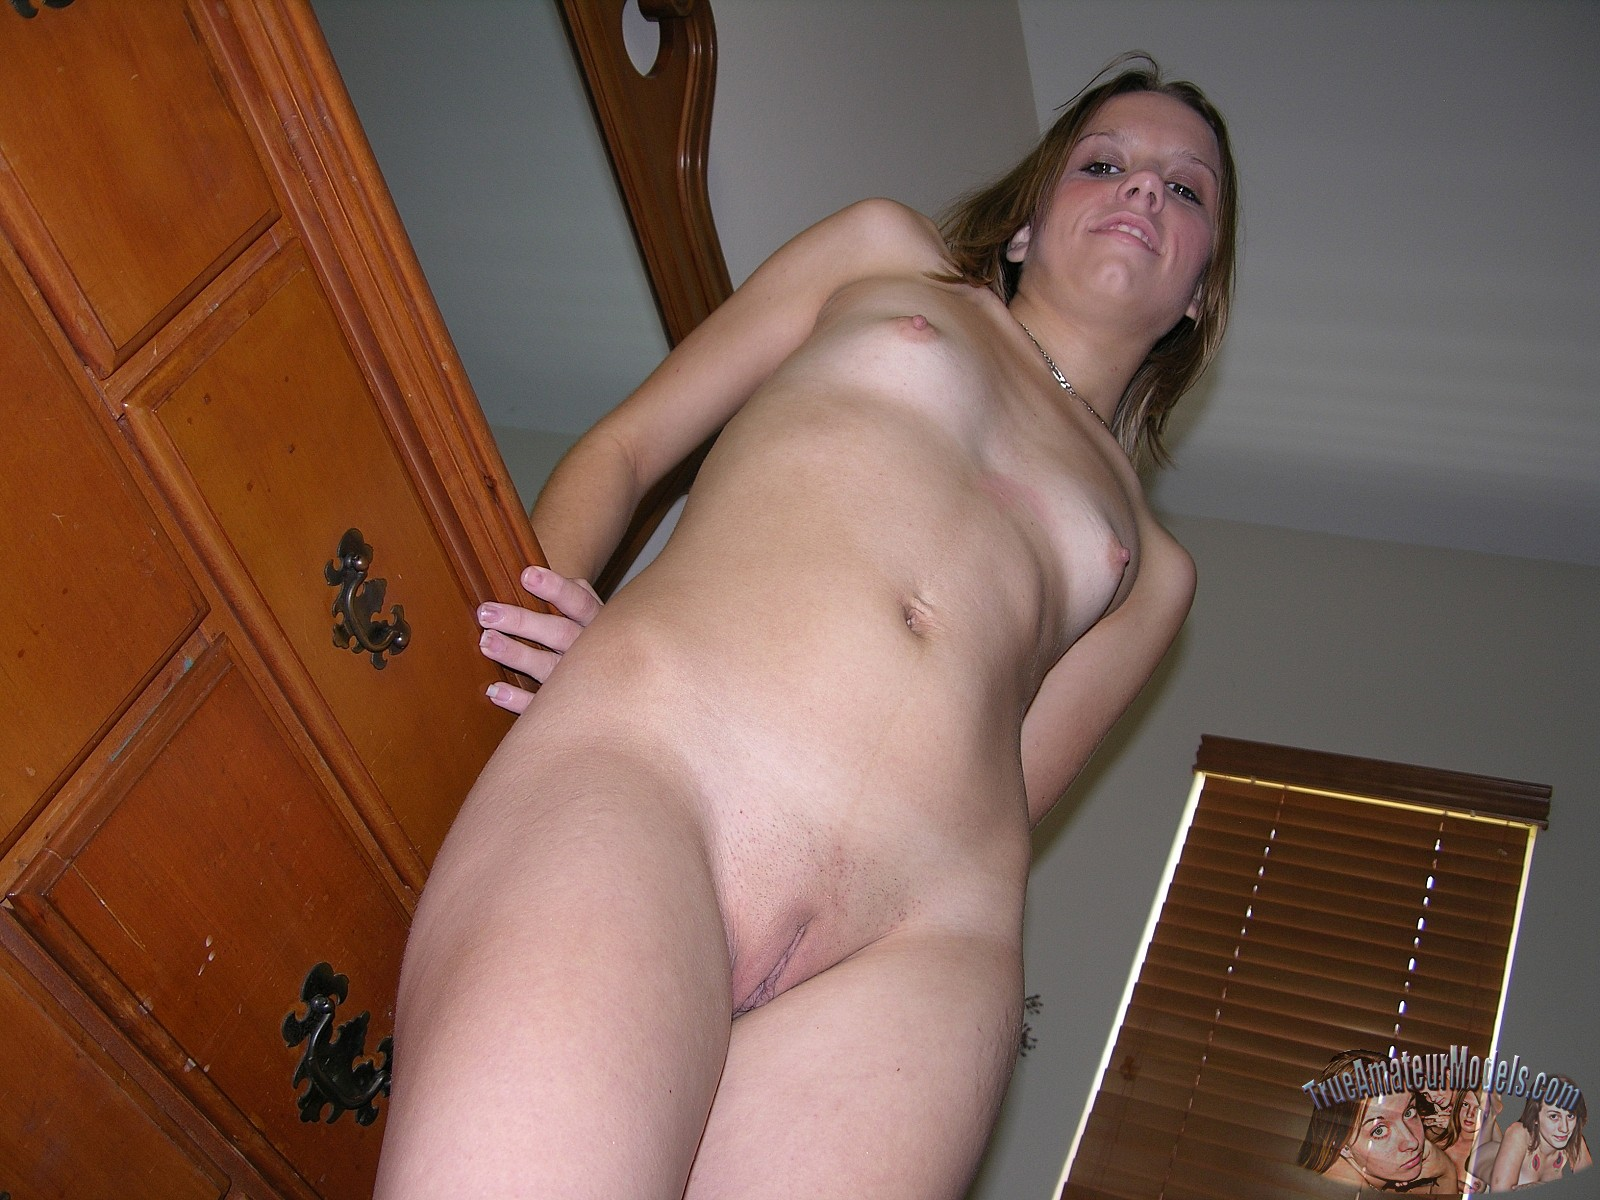 Young girls voyeur and panties pictures excellent interlocutors